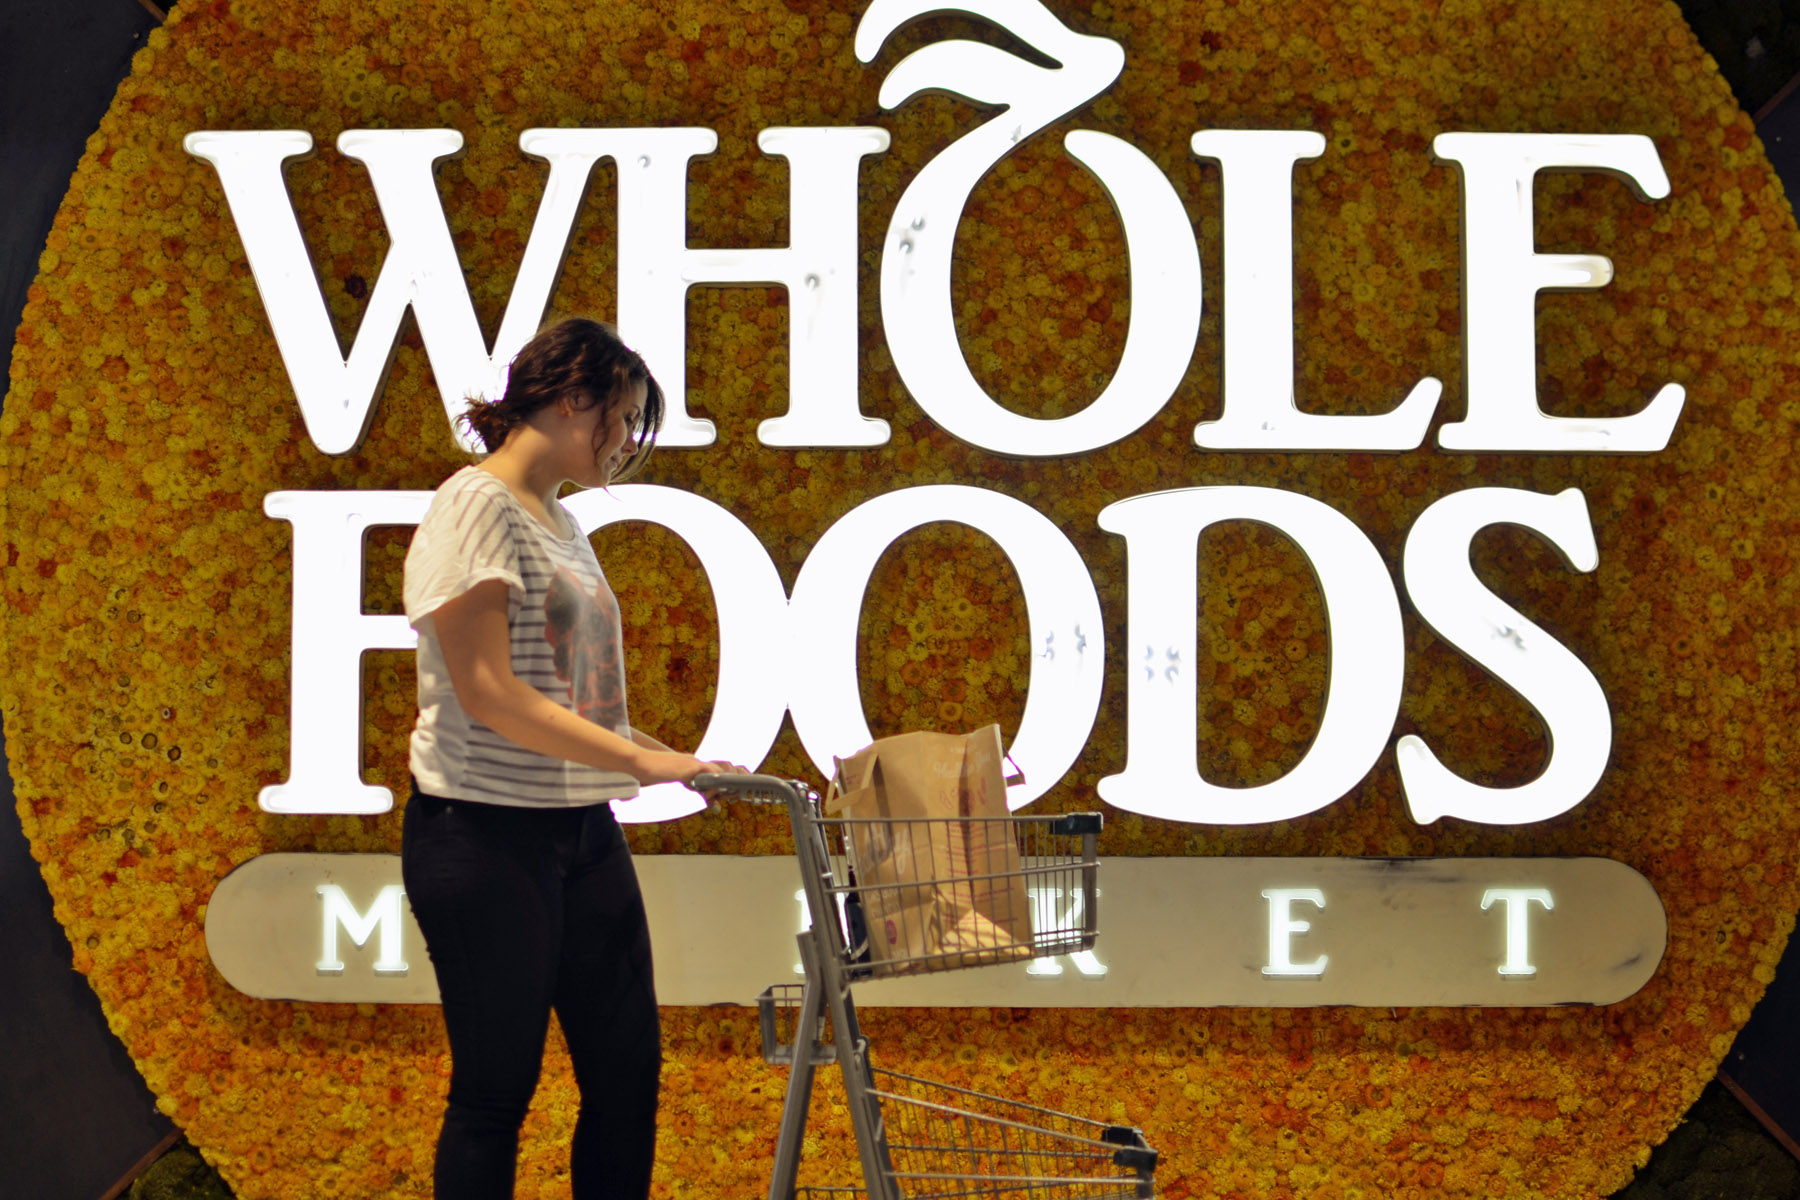 Feature: Marriage of Whole Foods with Amazon produces lower prices